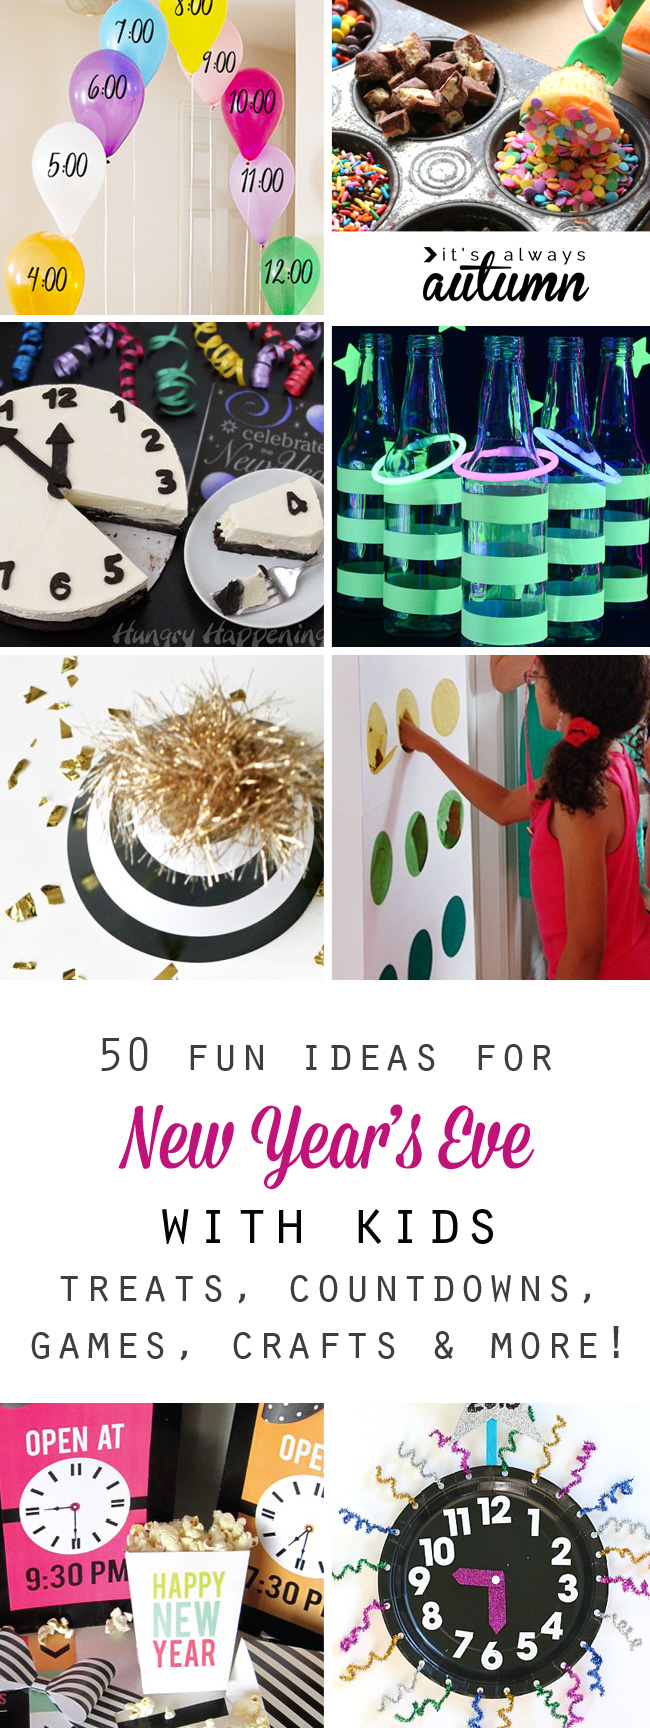 40+ Kid-Friendly New Year's Eve Party Ideas